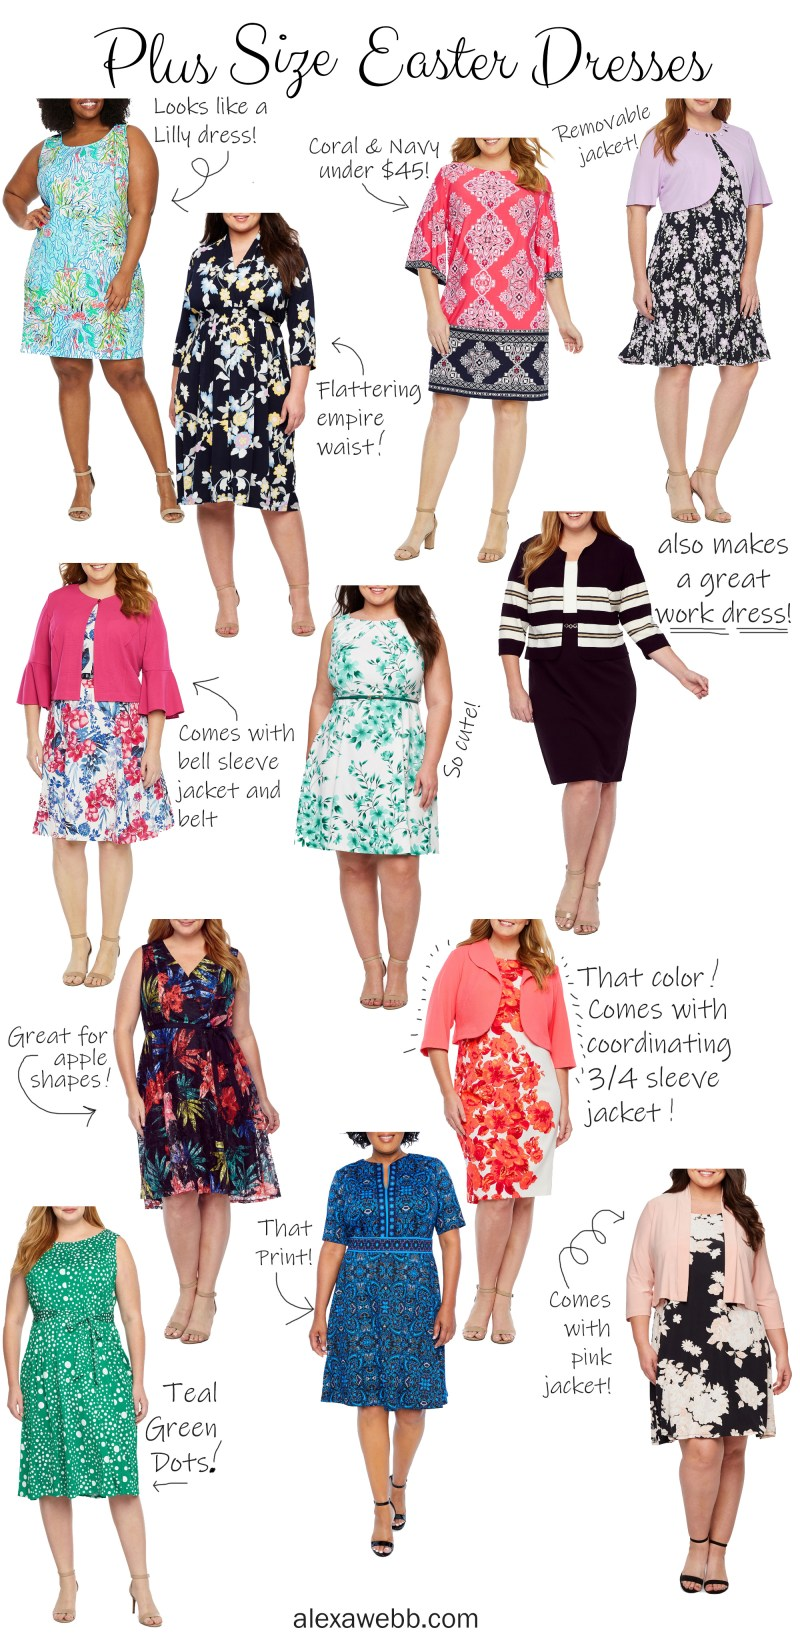 e64b881a9a6 12 Plus Size Easter Dresses - Alexa Webb